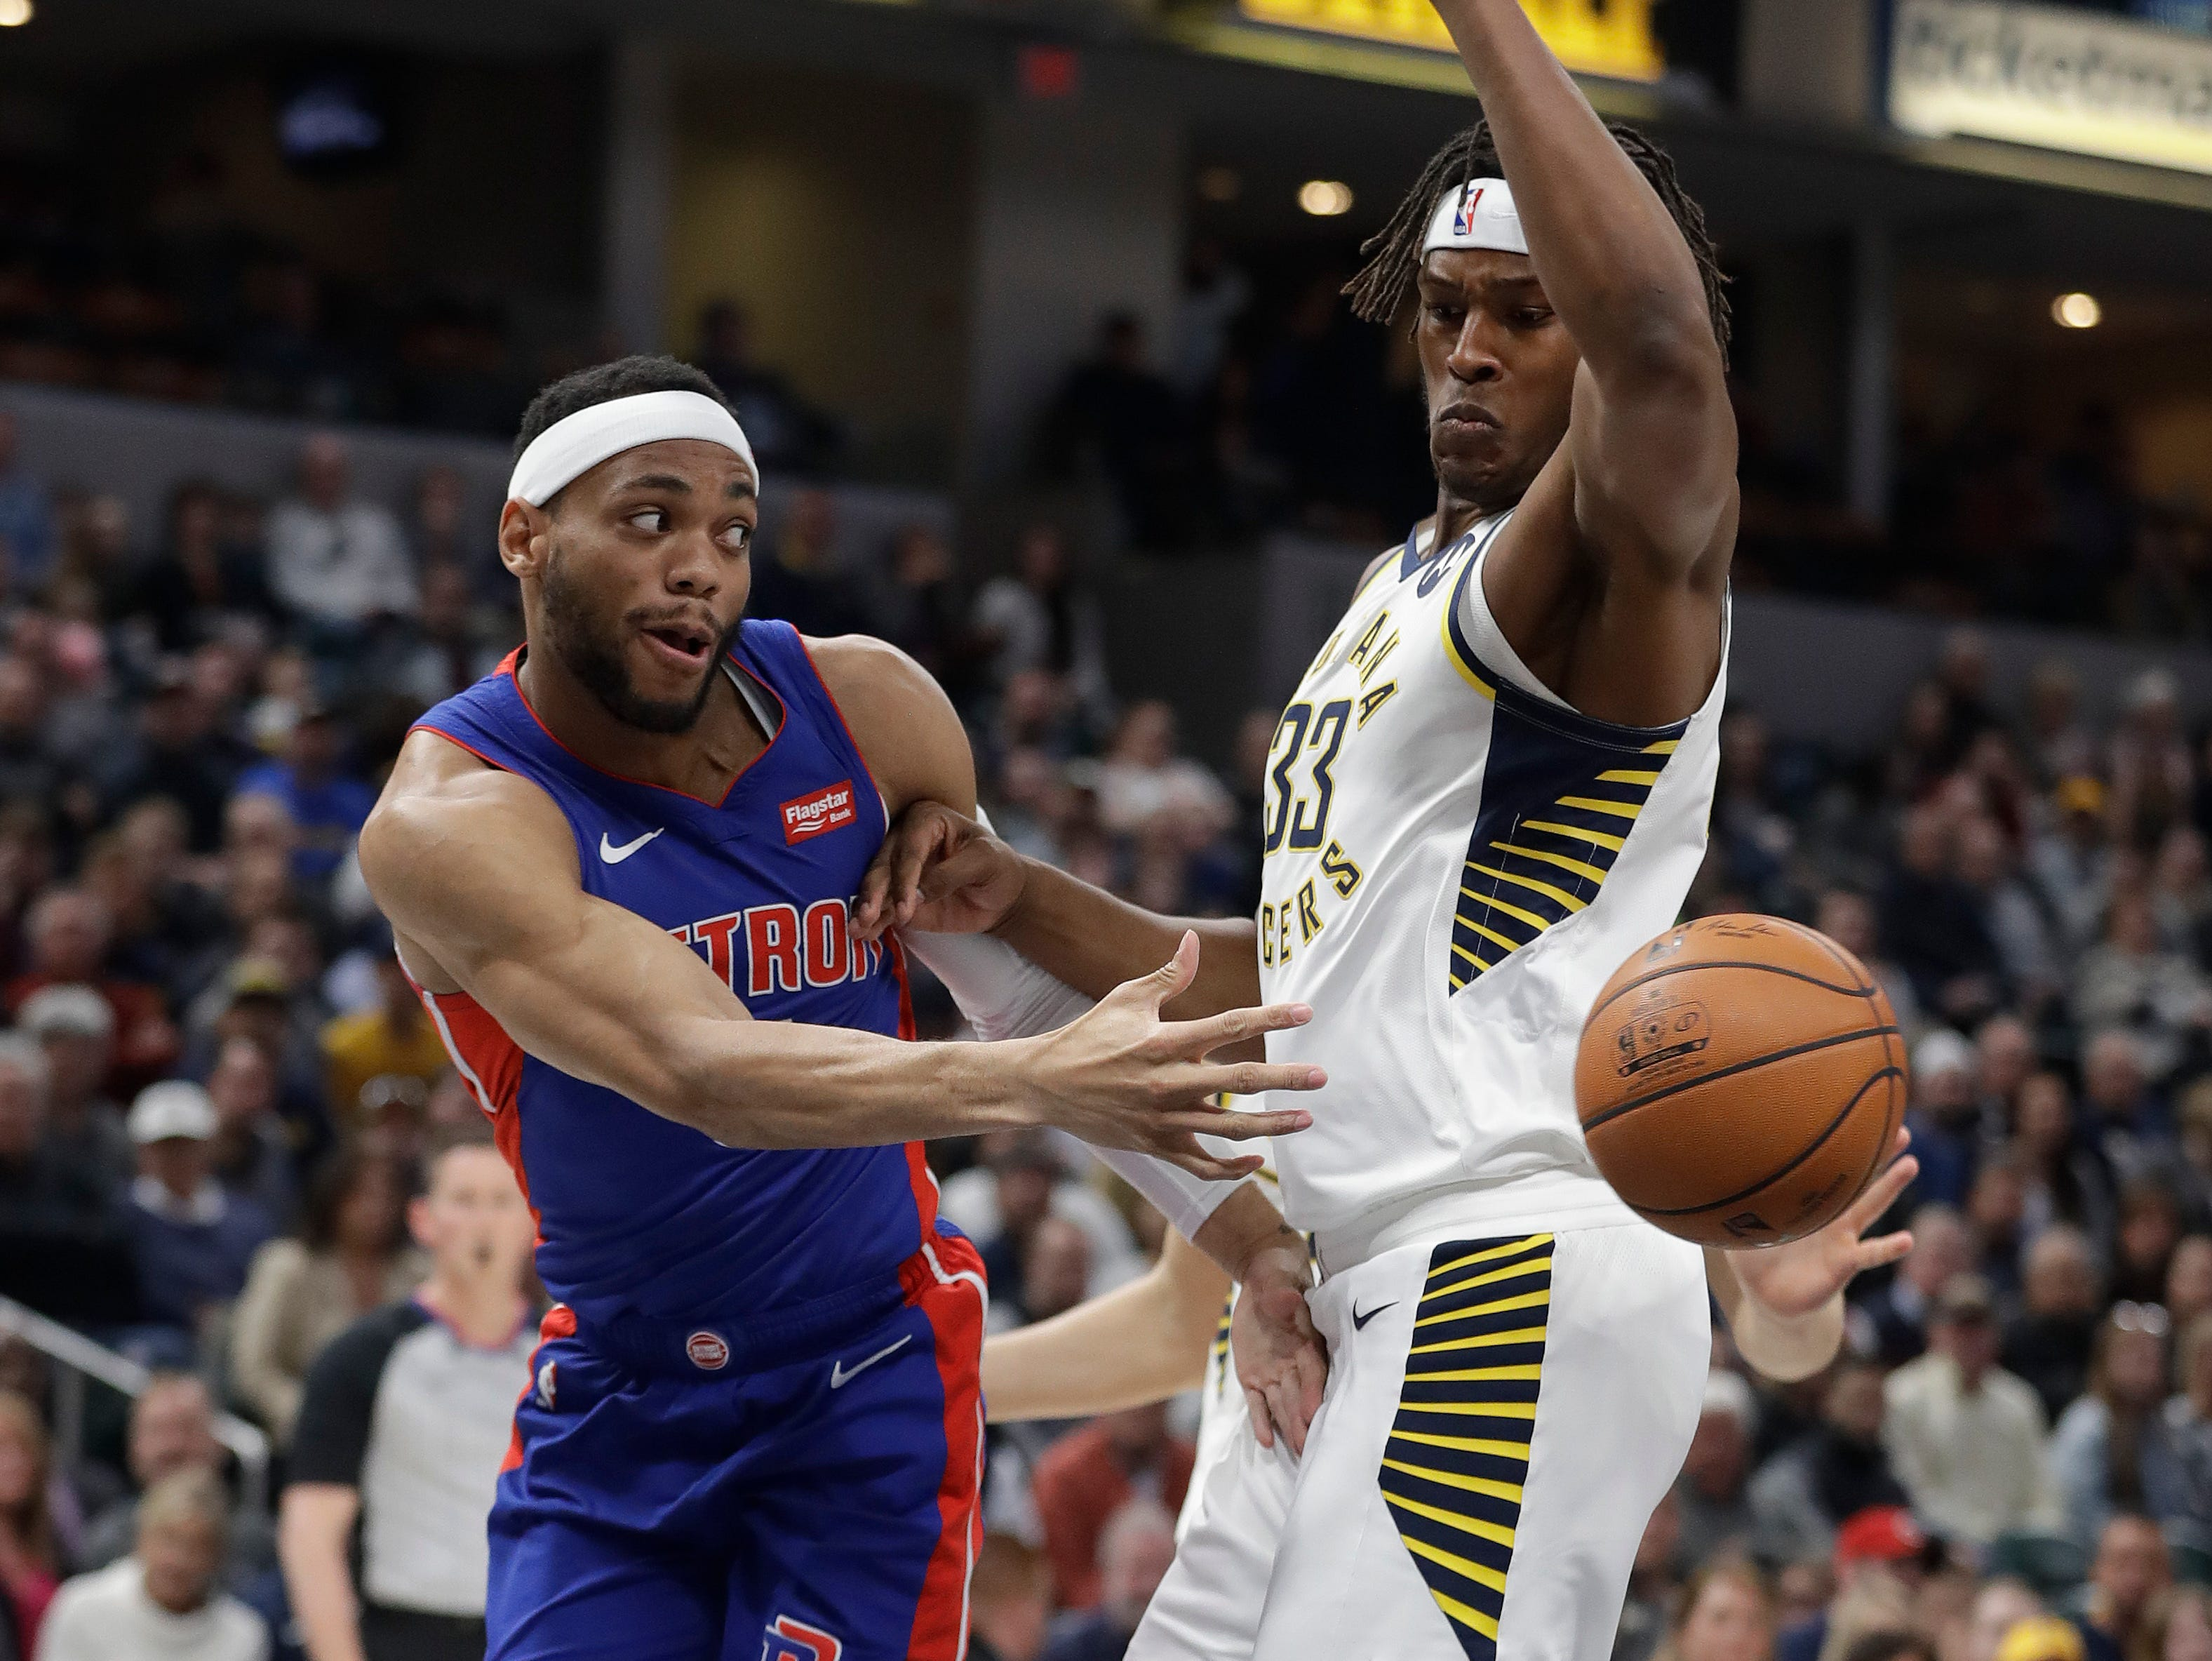 Detroit Pistons' Bruce Brown (6) makes a pass against Indiana Pacers' Myles Turner (33) during the first half.